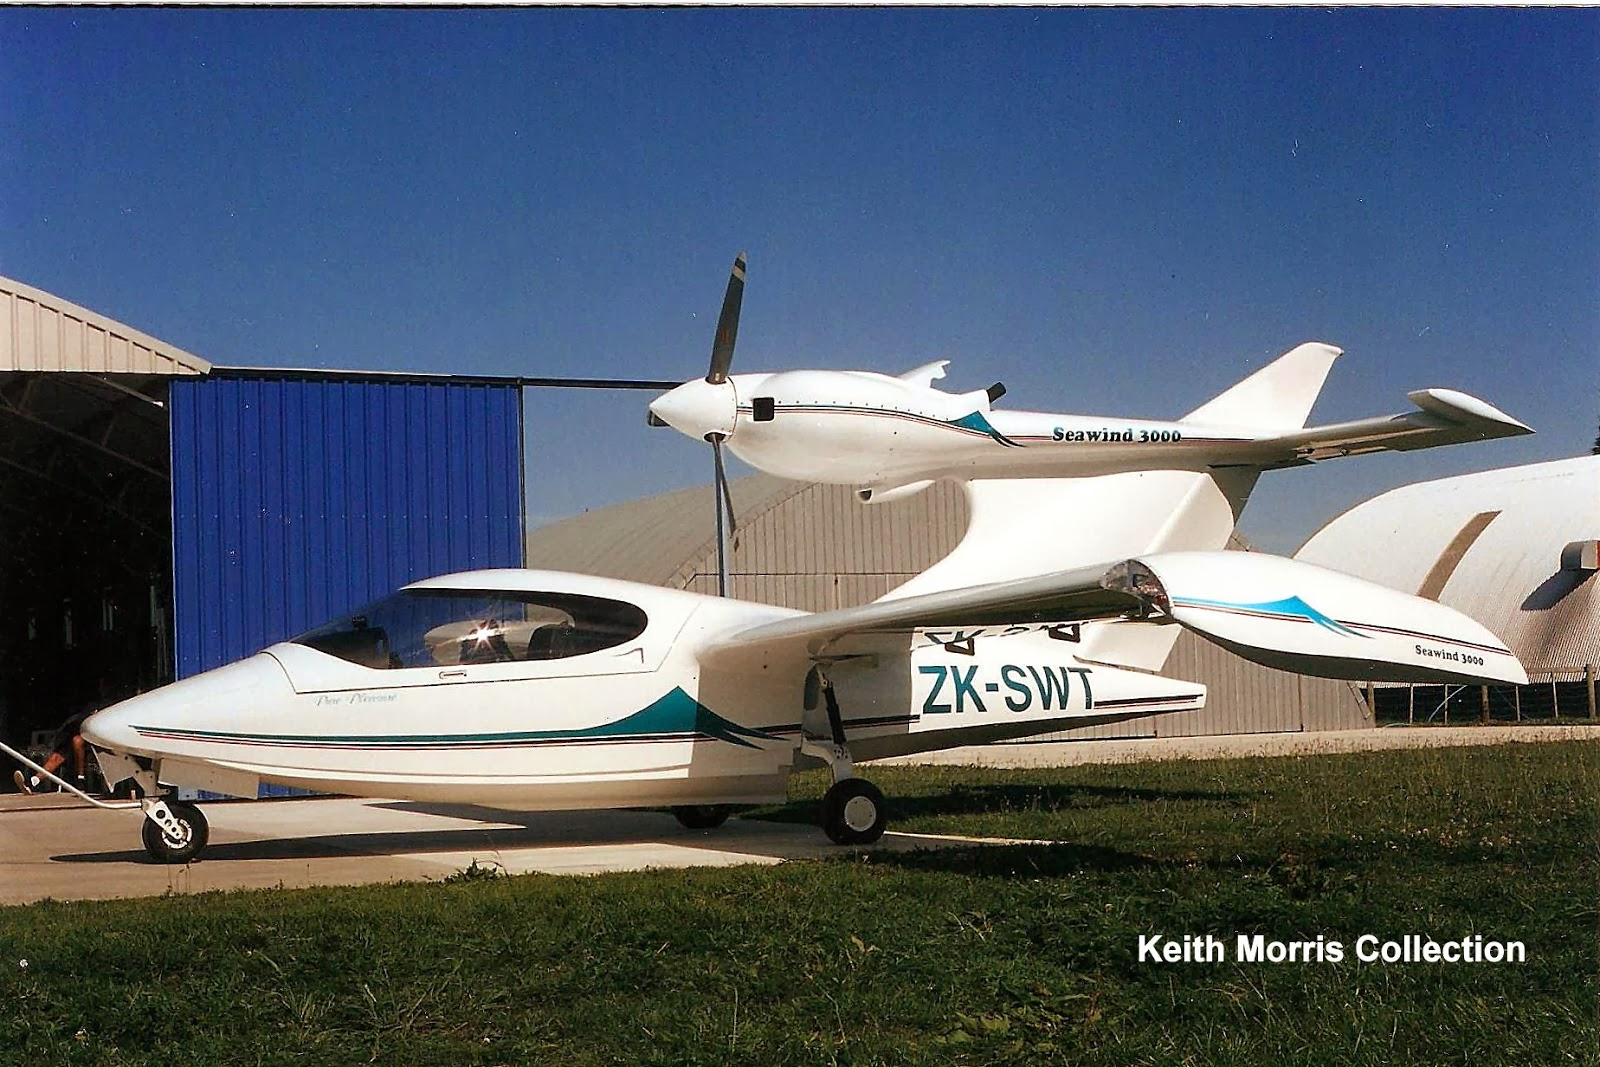 Nz Civil Aircraft Seawind 3000 Amphibians Of New Zealand